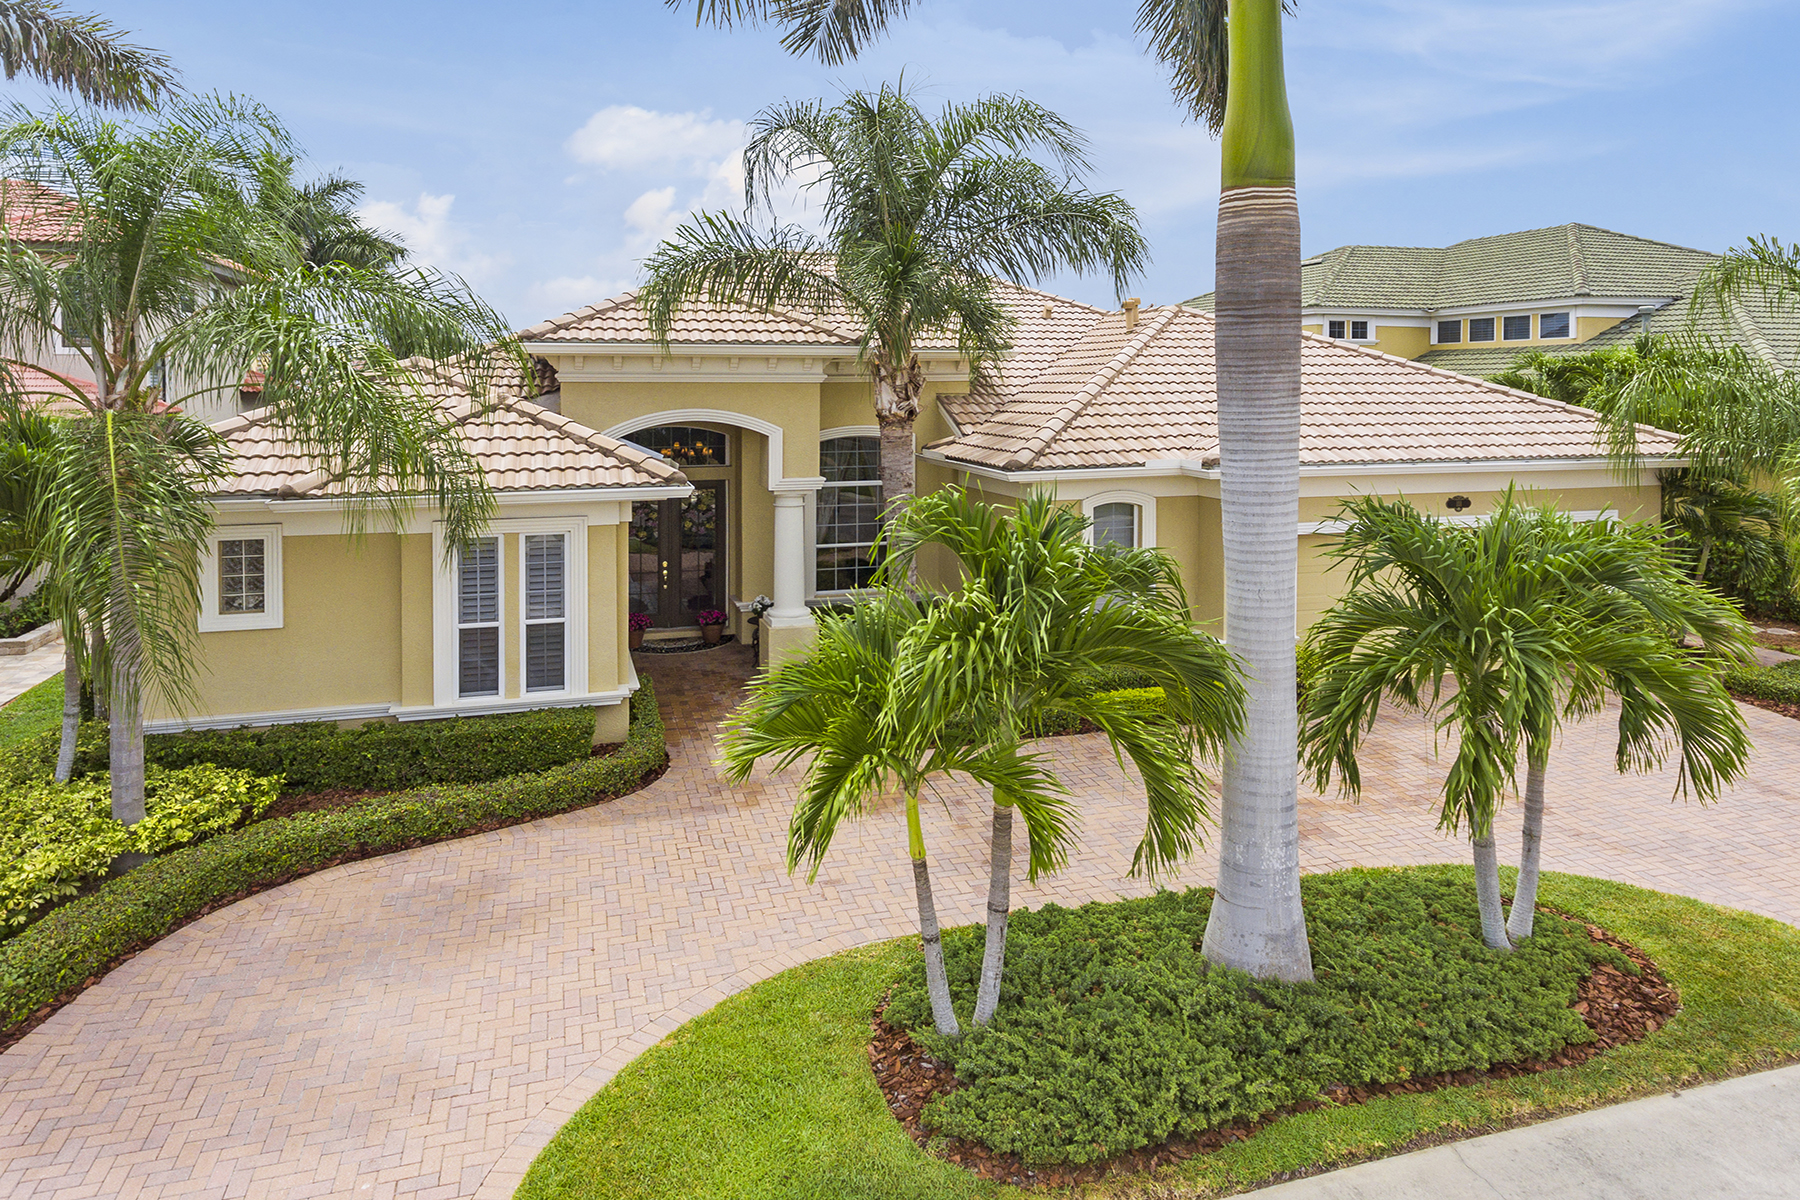 single family homes for Active at PENINSULA AT RIVIERA DUNES 111 12th Ave E Palmetto, Florida 34221 United States